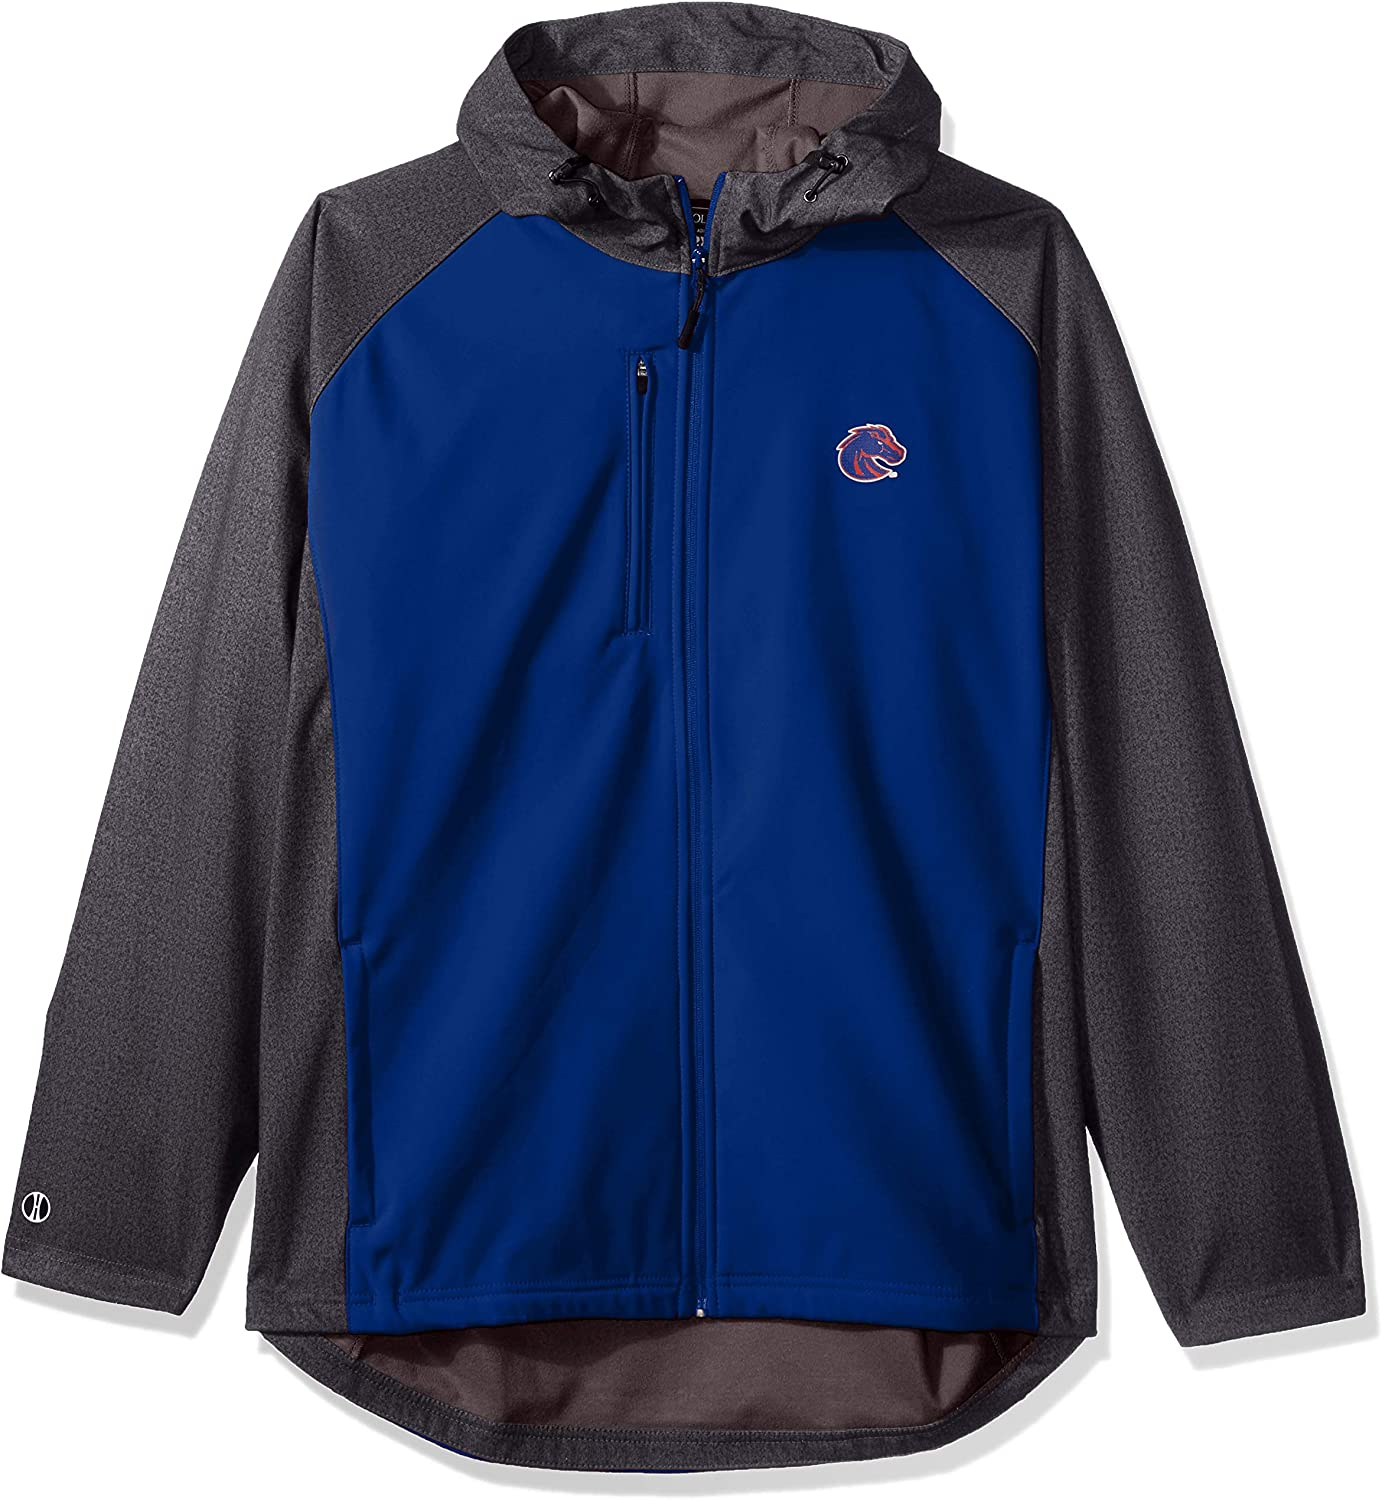 Carbon Print//Scarlet X-Large Ouray Sportswear NCAA Wisconsin Badgers Womens Raider Soft Shell Jacket